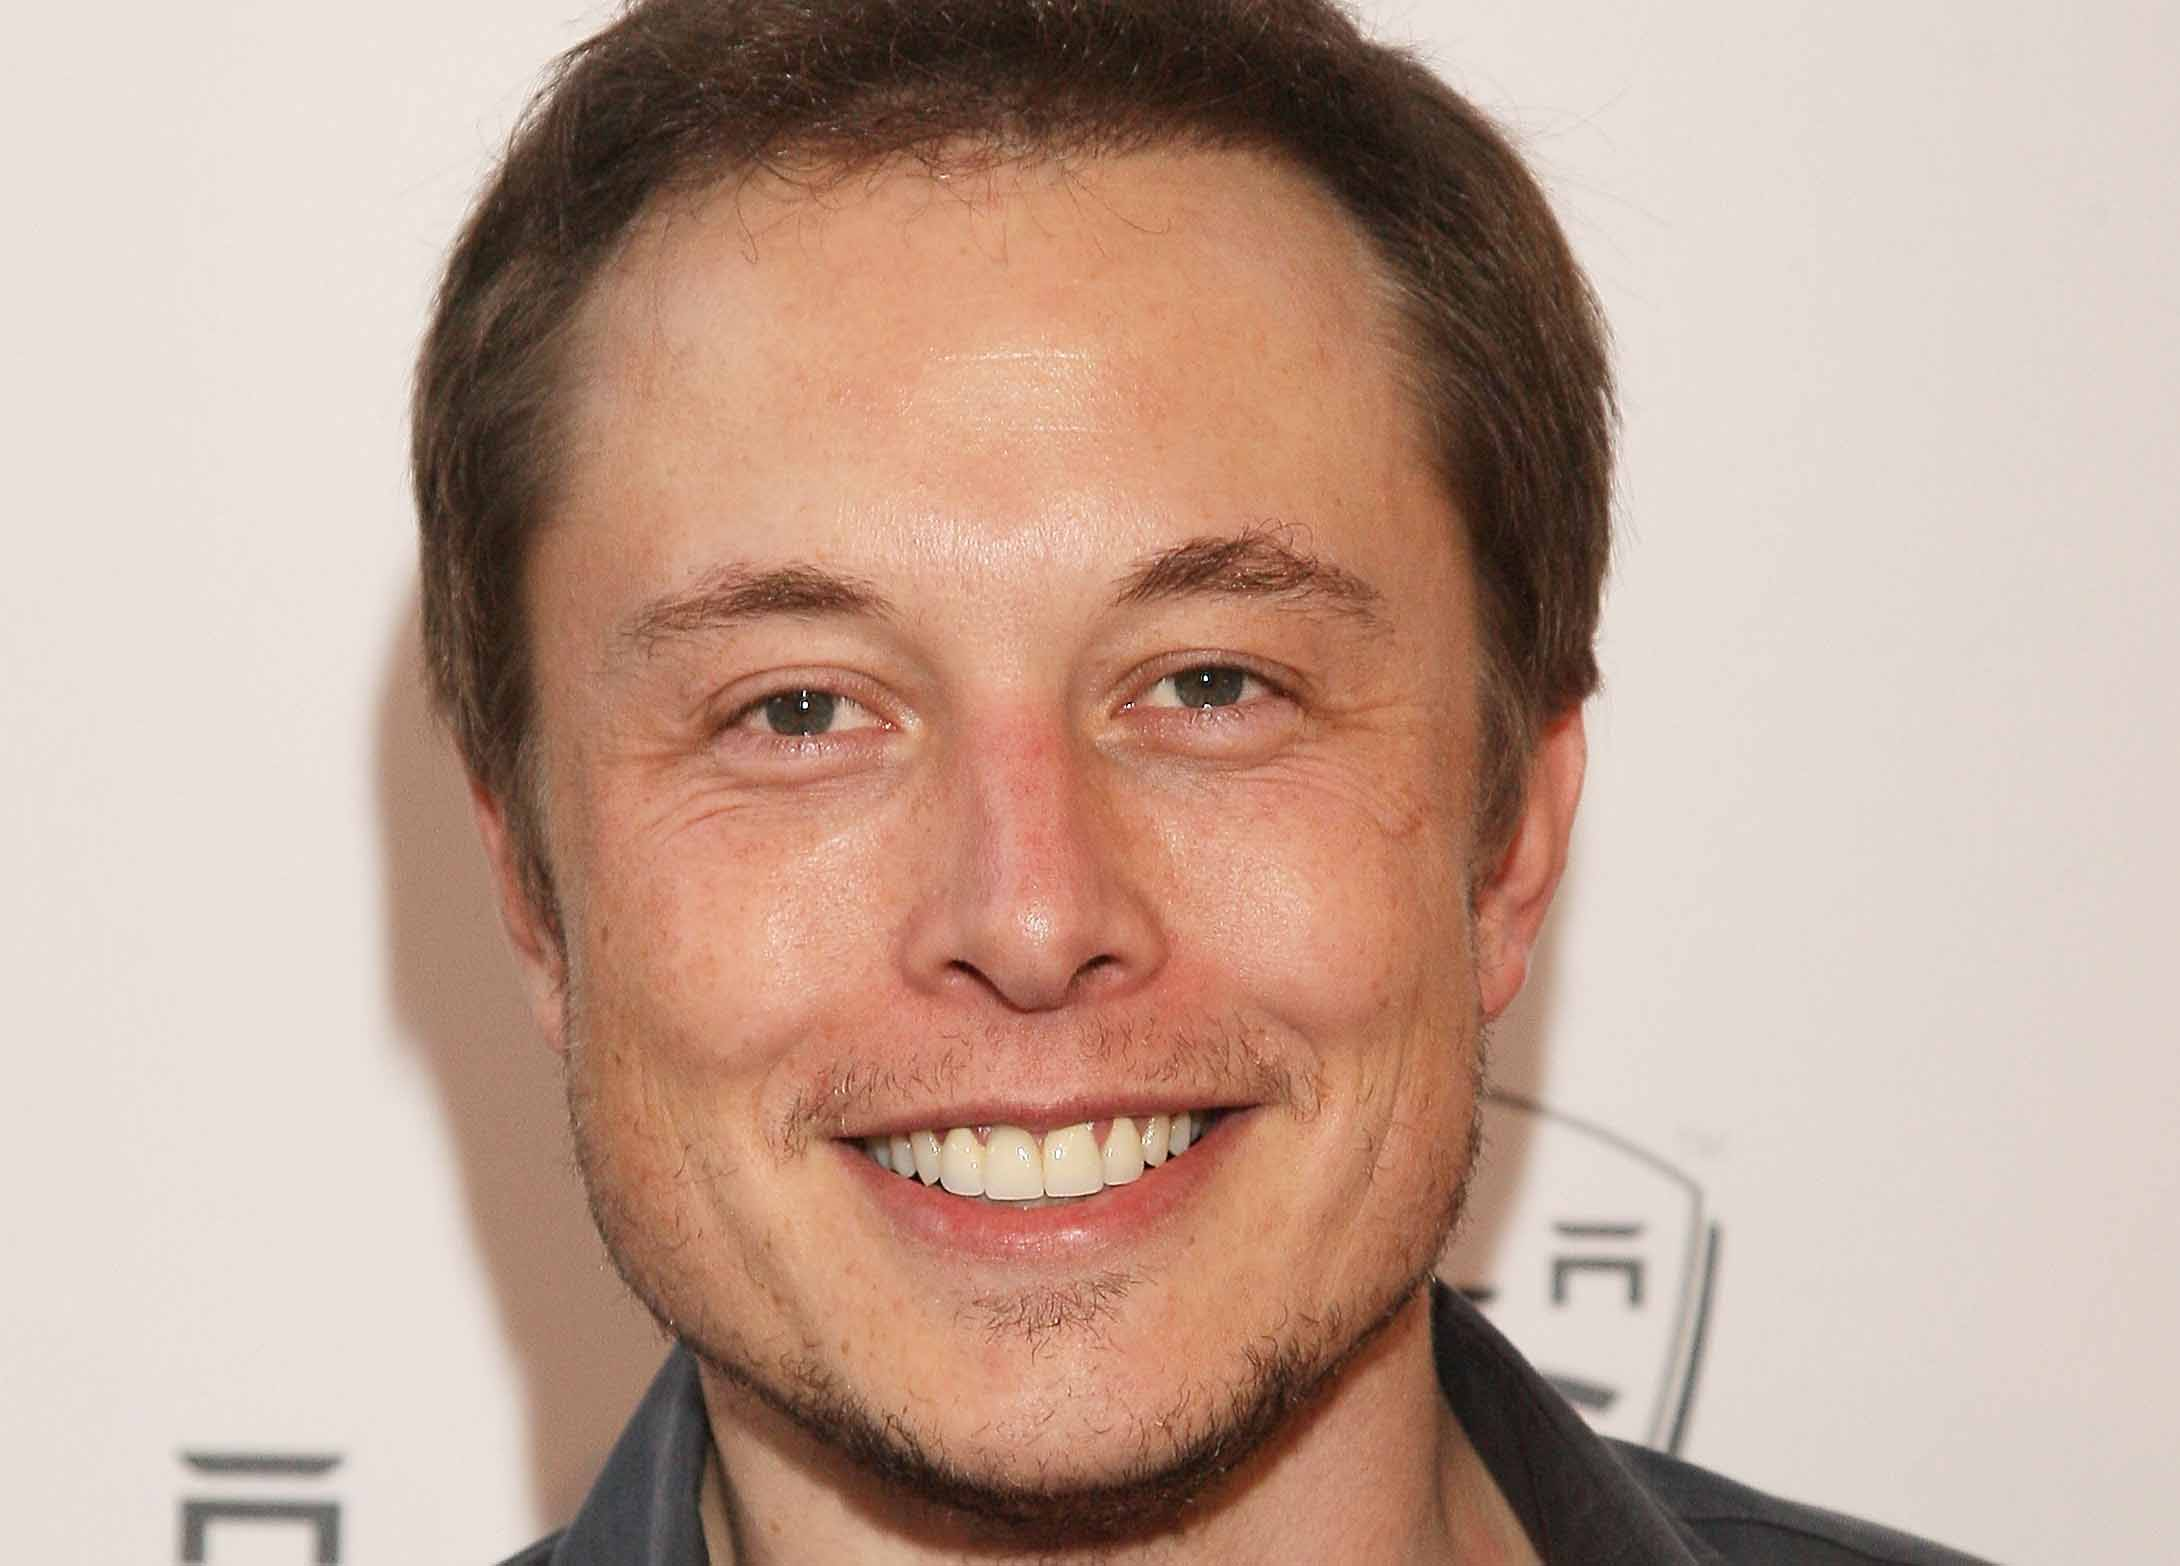 Elon Musk Says There's A '70 Percent' Chance He'll Move To Mars [VIDEO]